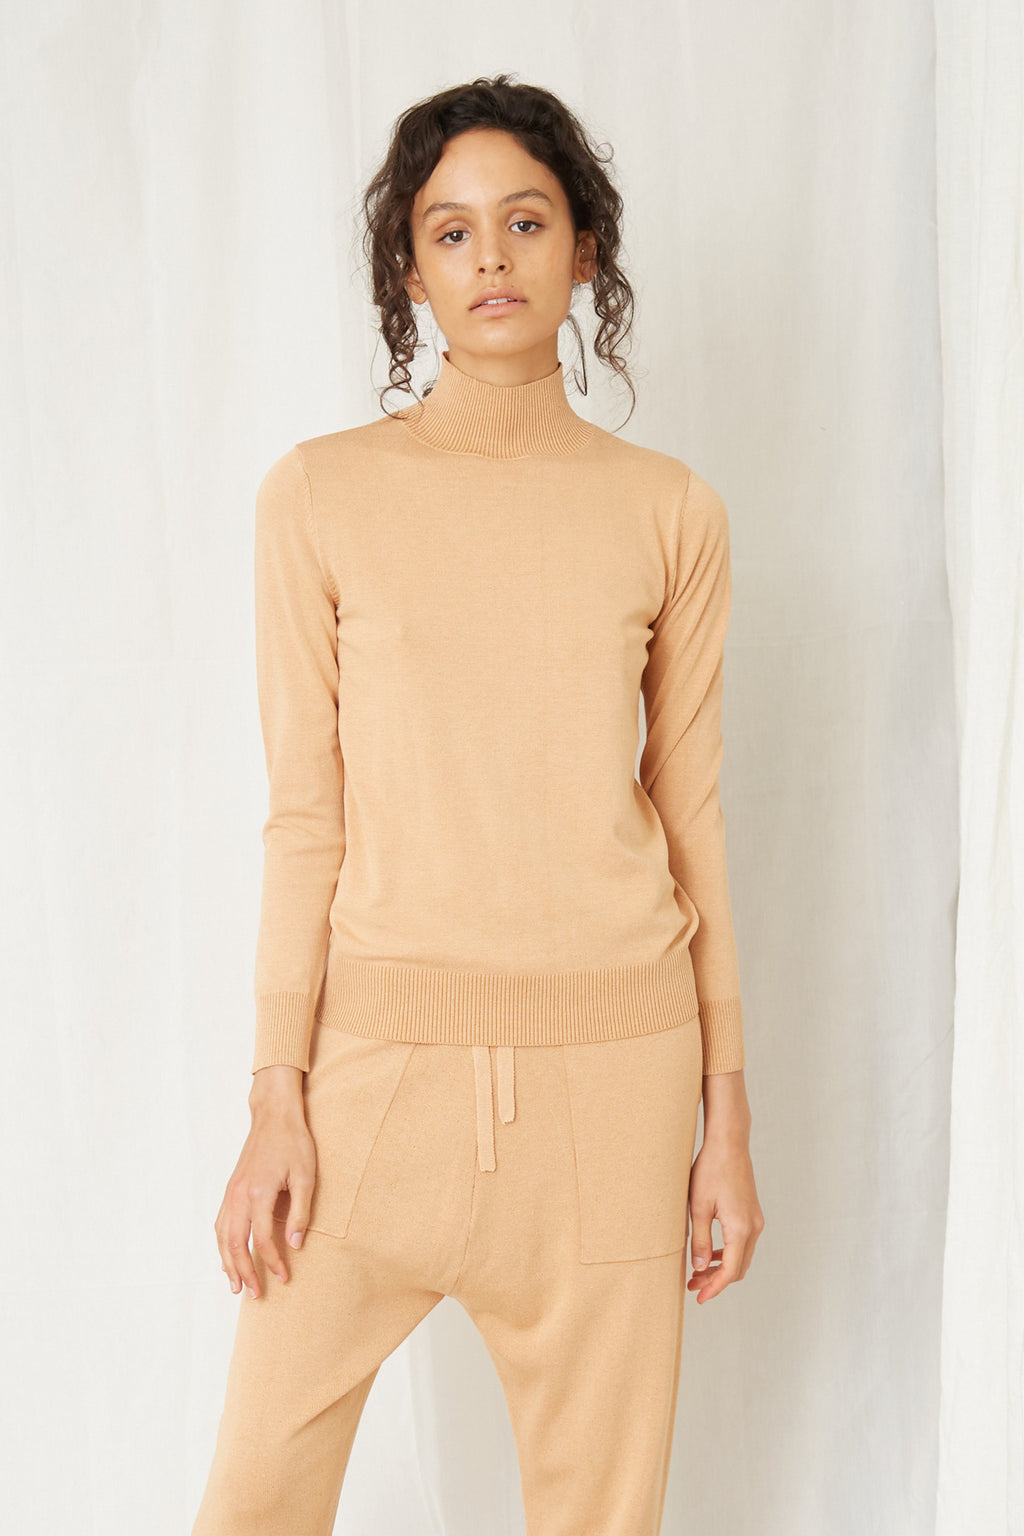 Third Form Fine Days Turtleneck - Camel